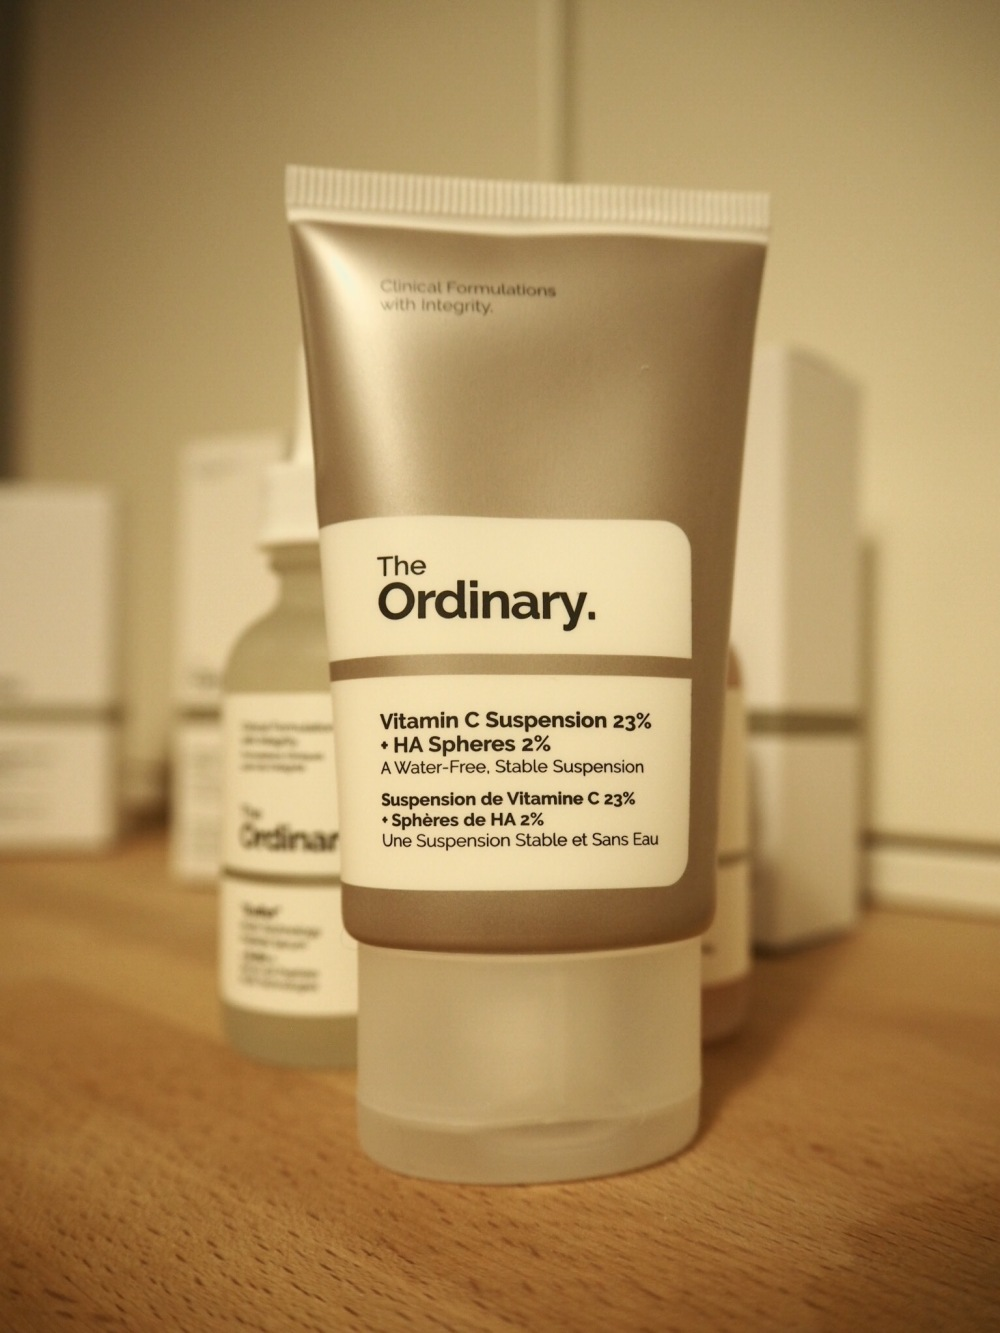 The Ordinary Skincare|Acne and Aging Skin Regime packaging- flat plastic tube